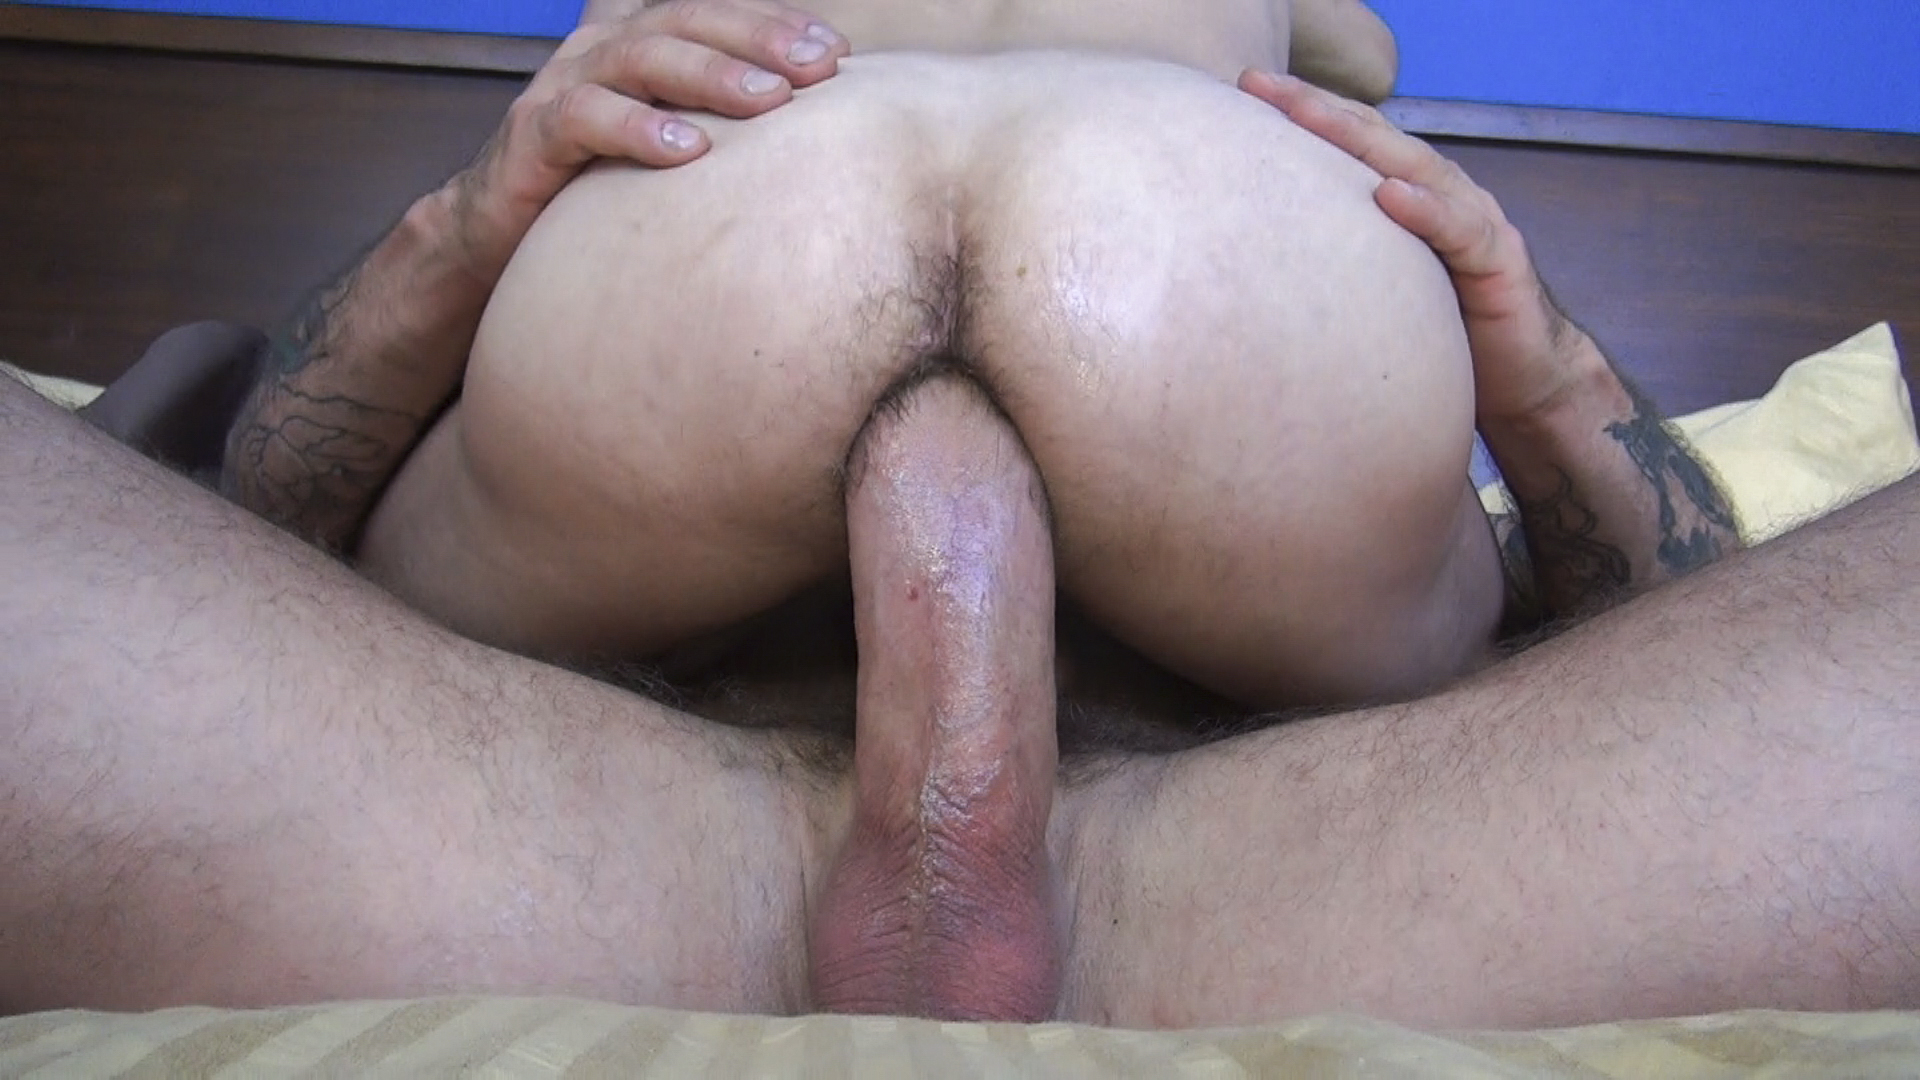 10 inch plus cock